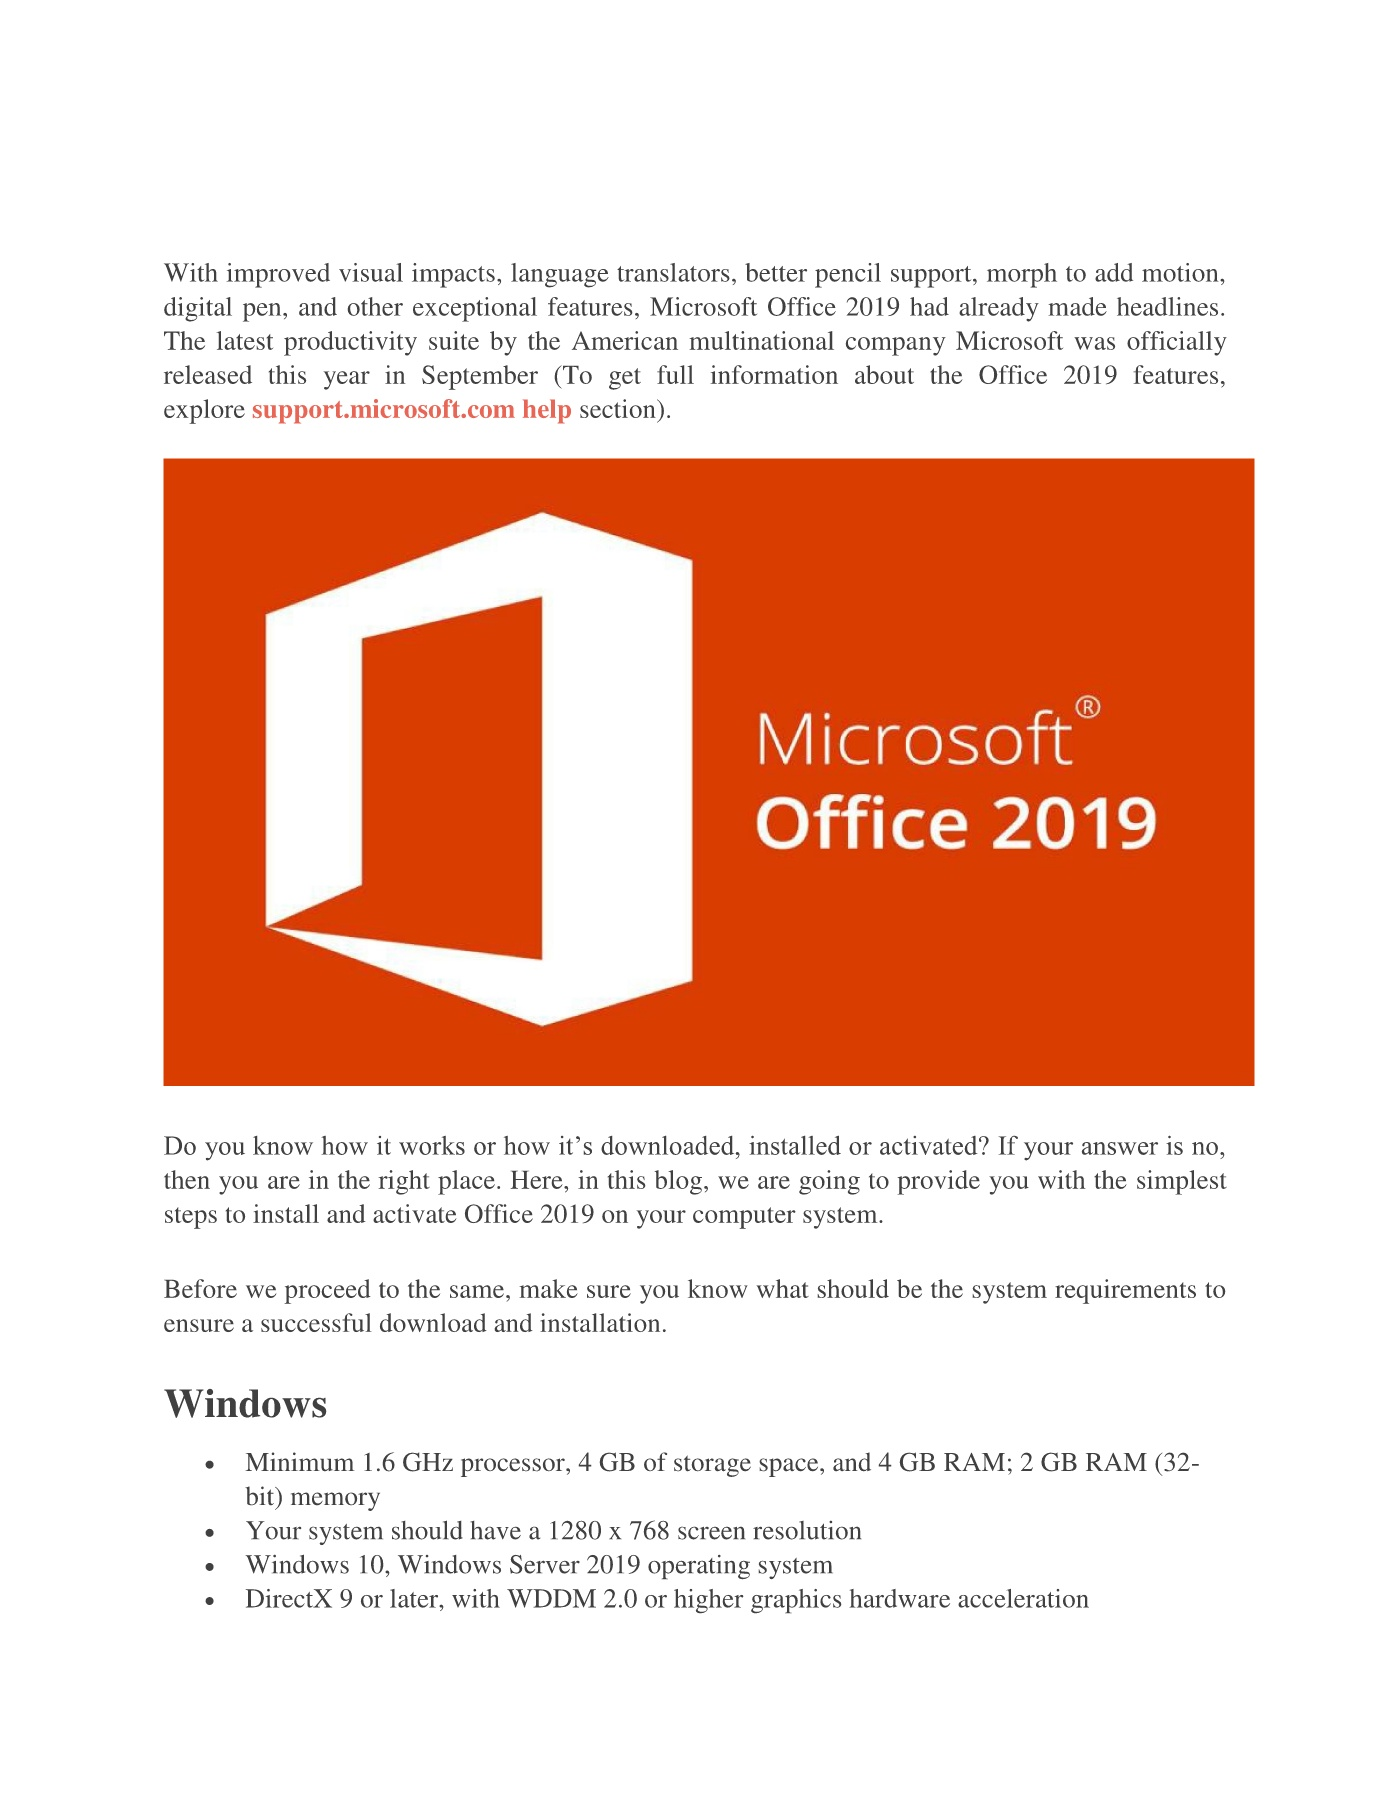 Guide to install MS Office 2019 | 1844-797-8692